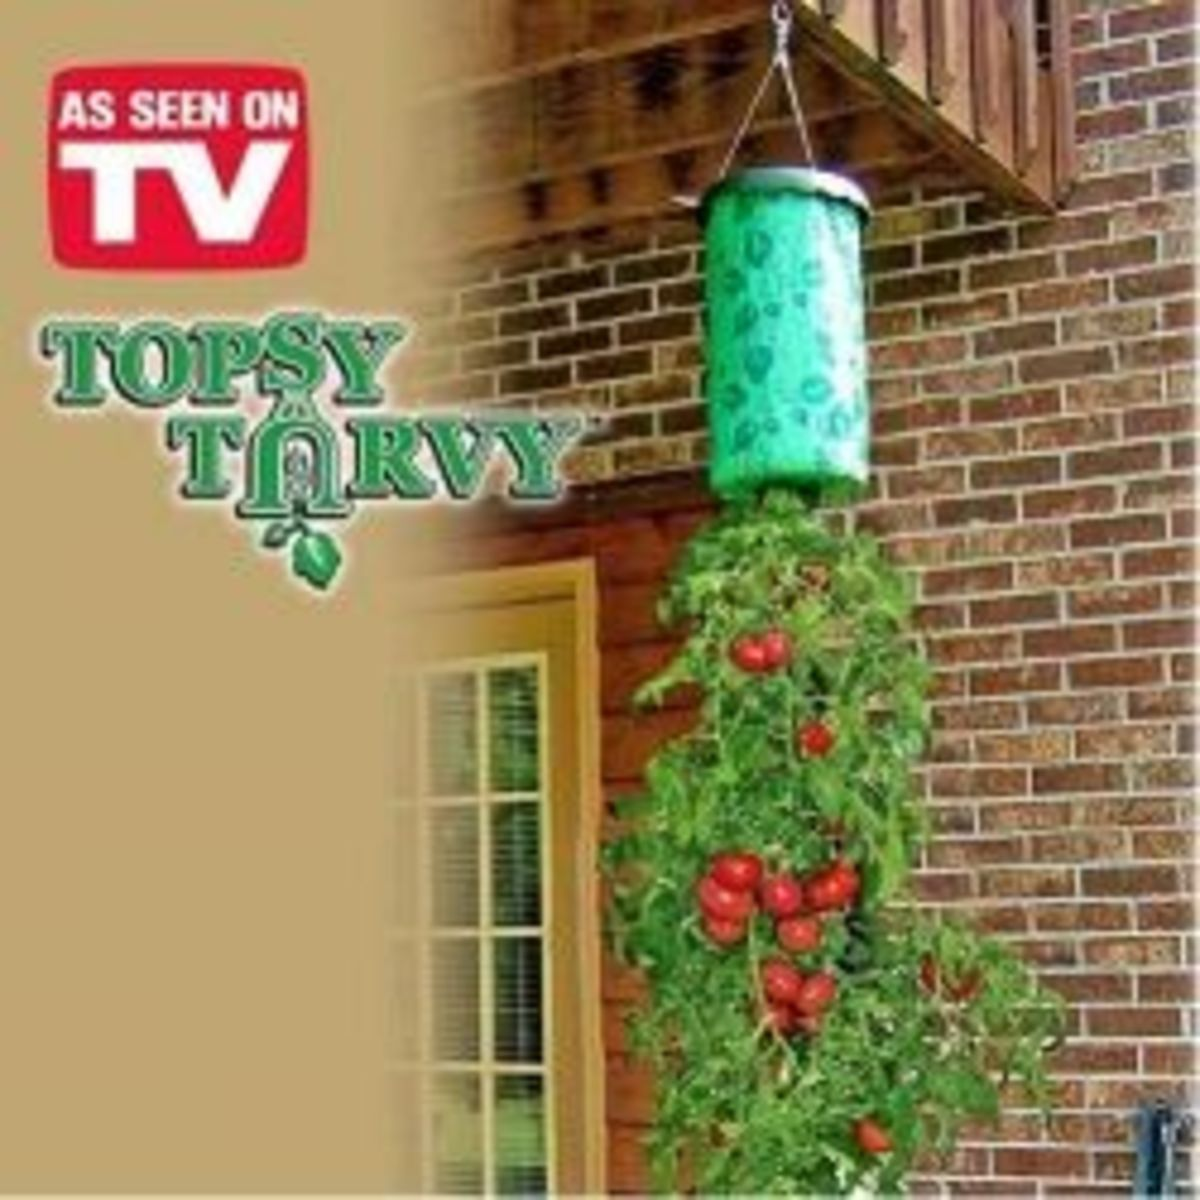 Make Your Own Topsy Turvy Tomato Planter